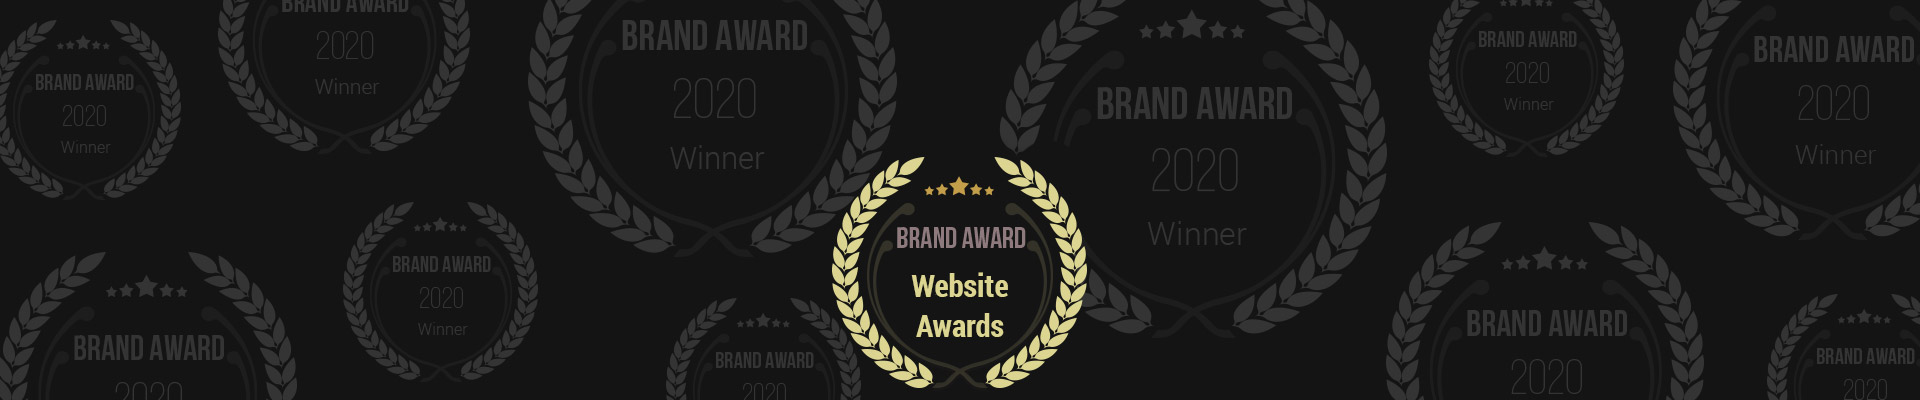 Website Awards